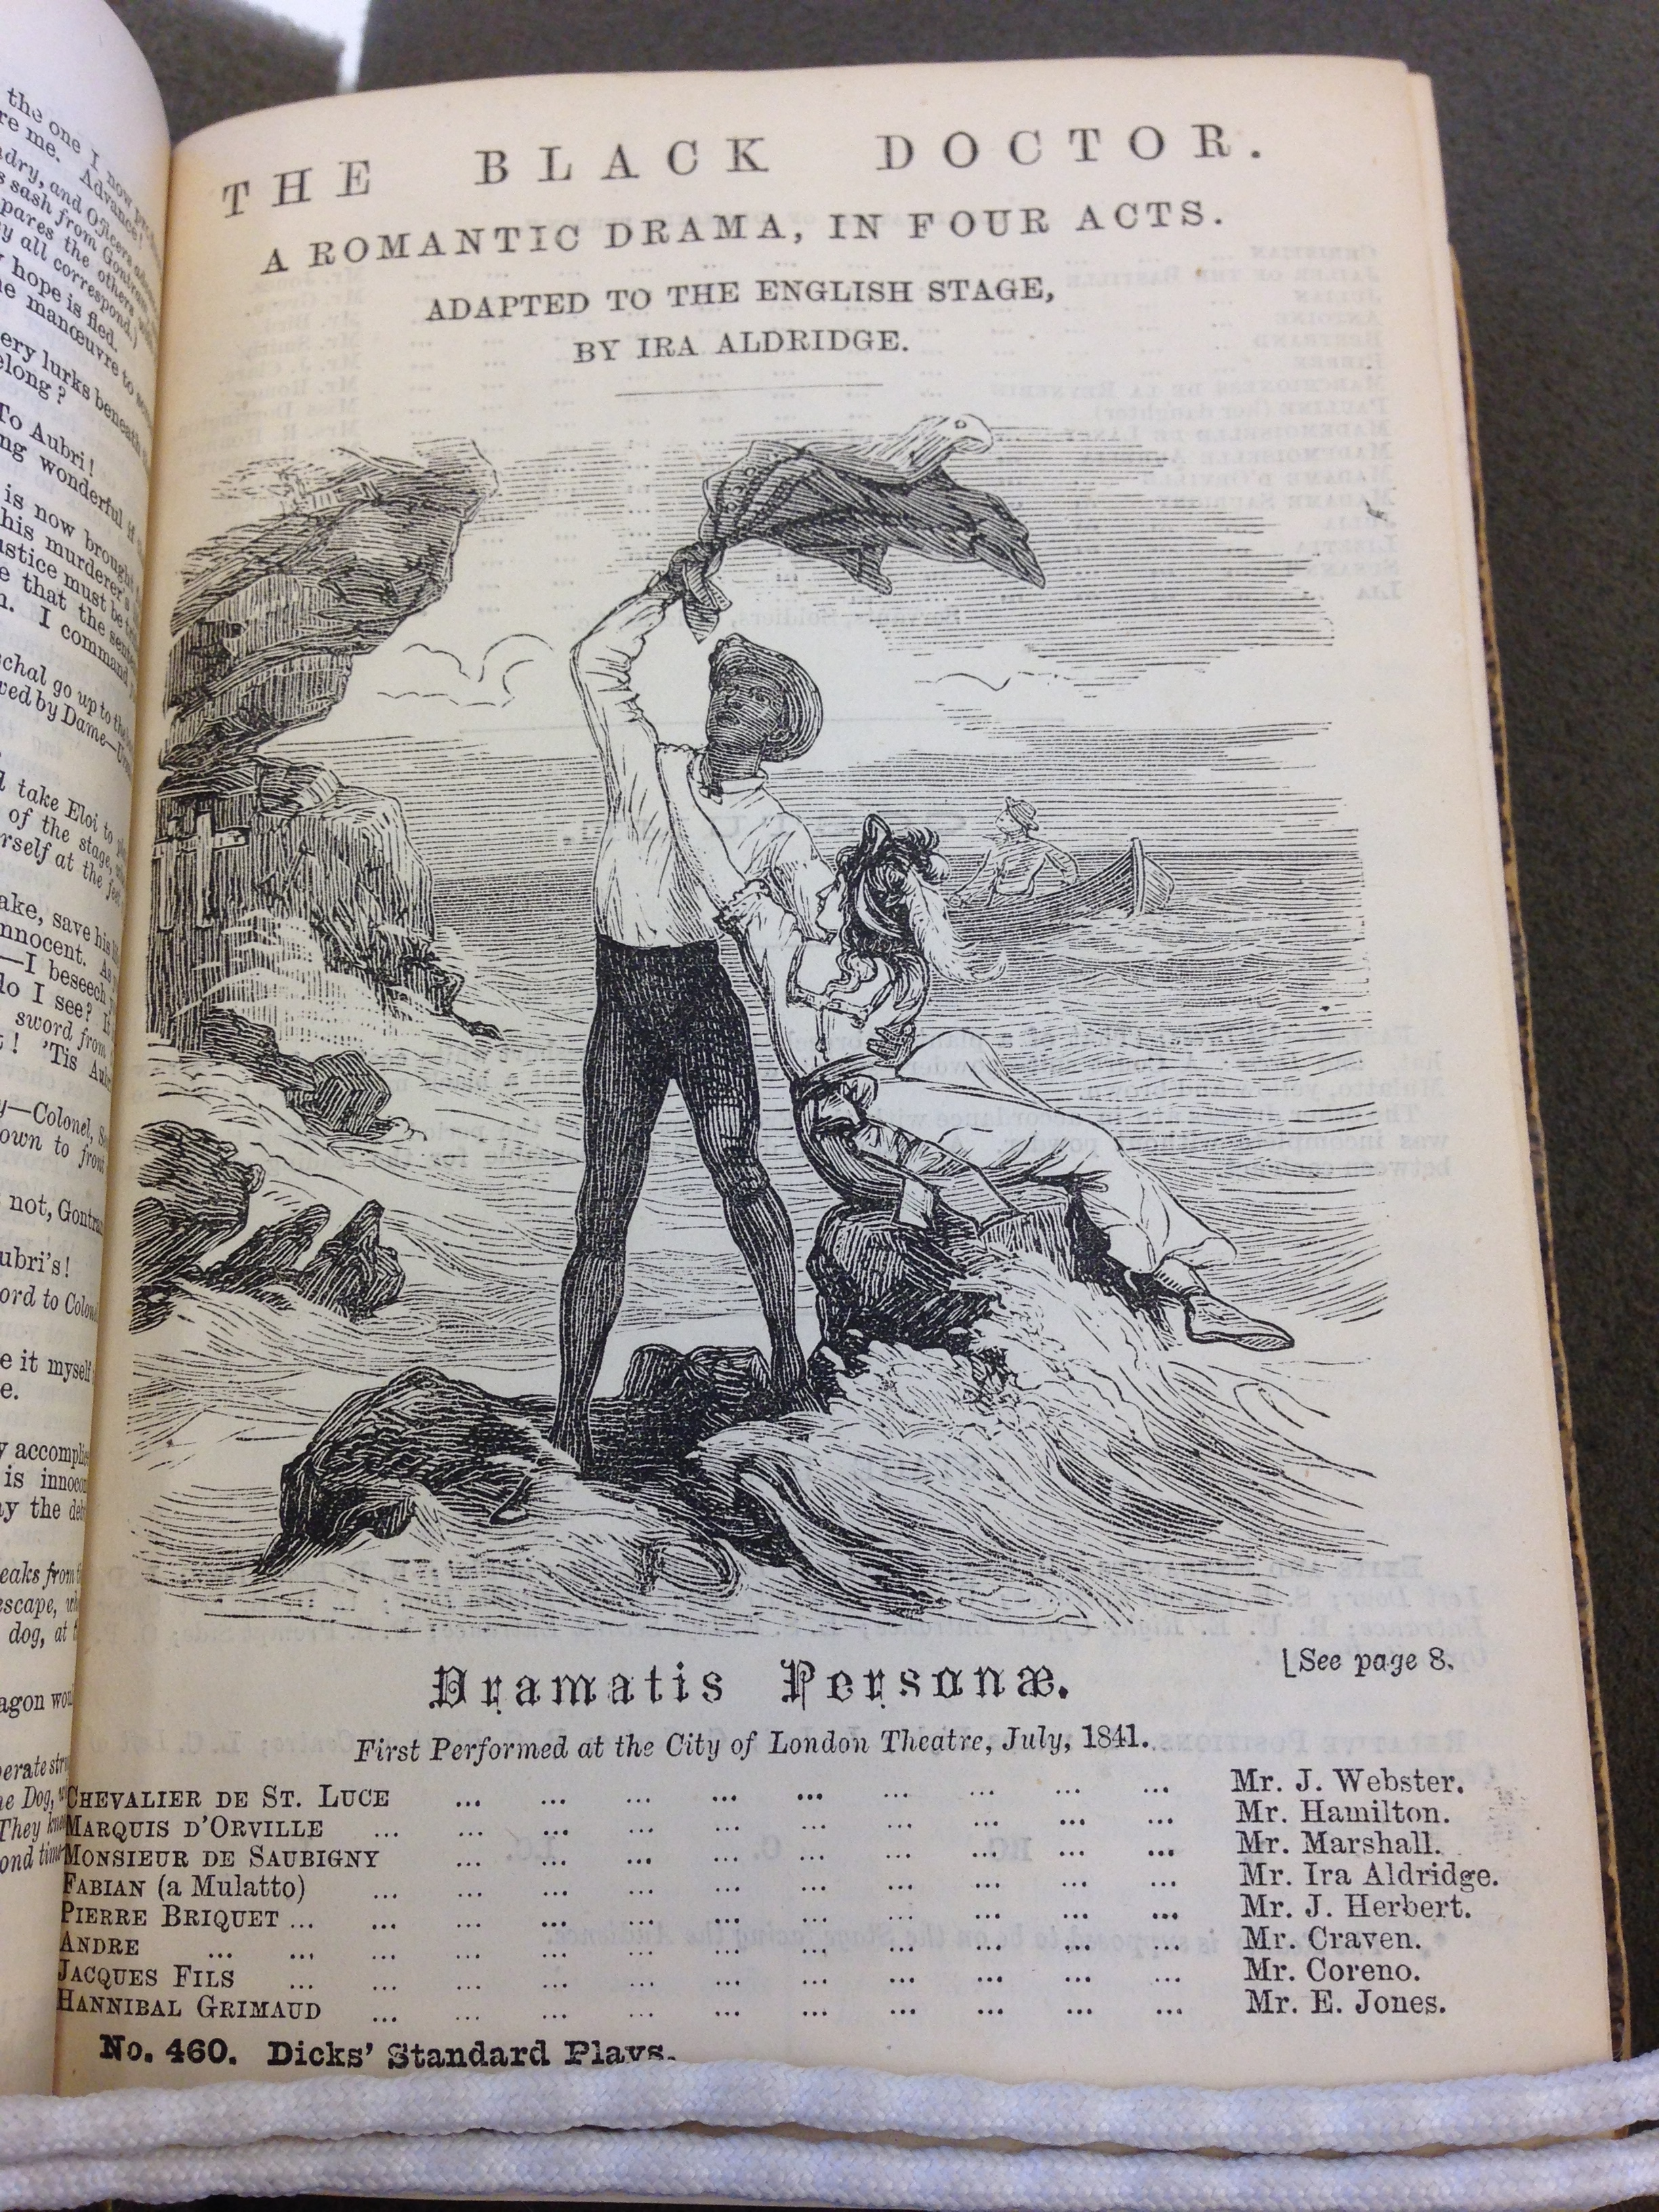 <b>The Black Doctor</b>     	</br>Illustrated page of Ira Aldridge&#39;s adaptation of The Black Doctor</br><br/><b>Source: </b><i>The Black Doctor, Dicks&#39; Standard Plays, No. 460 (London: John Dicks, n.d.). Reproduced by permission of the Hatcher Special Collections Library, University of Michigan, Ann Arbor, MI.</i>